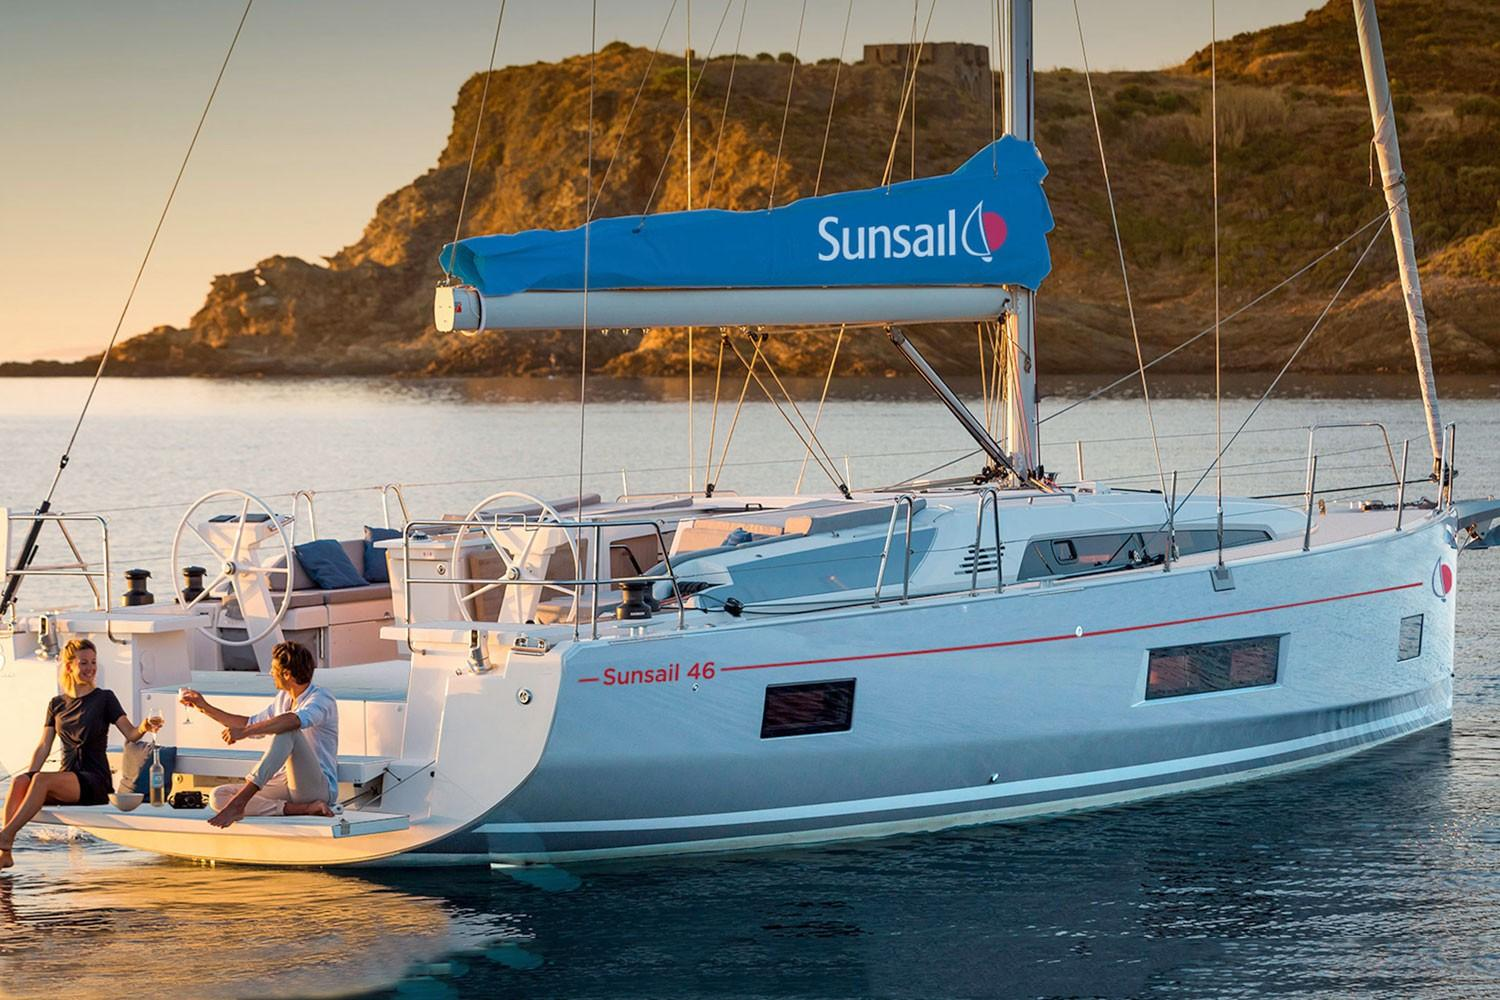 Sunsail closes the base in Mallorca